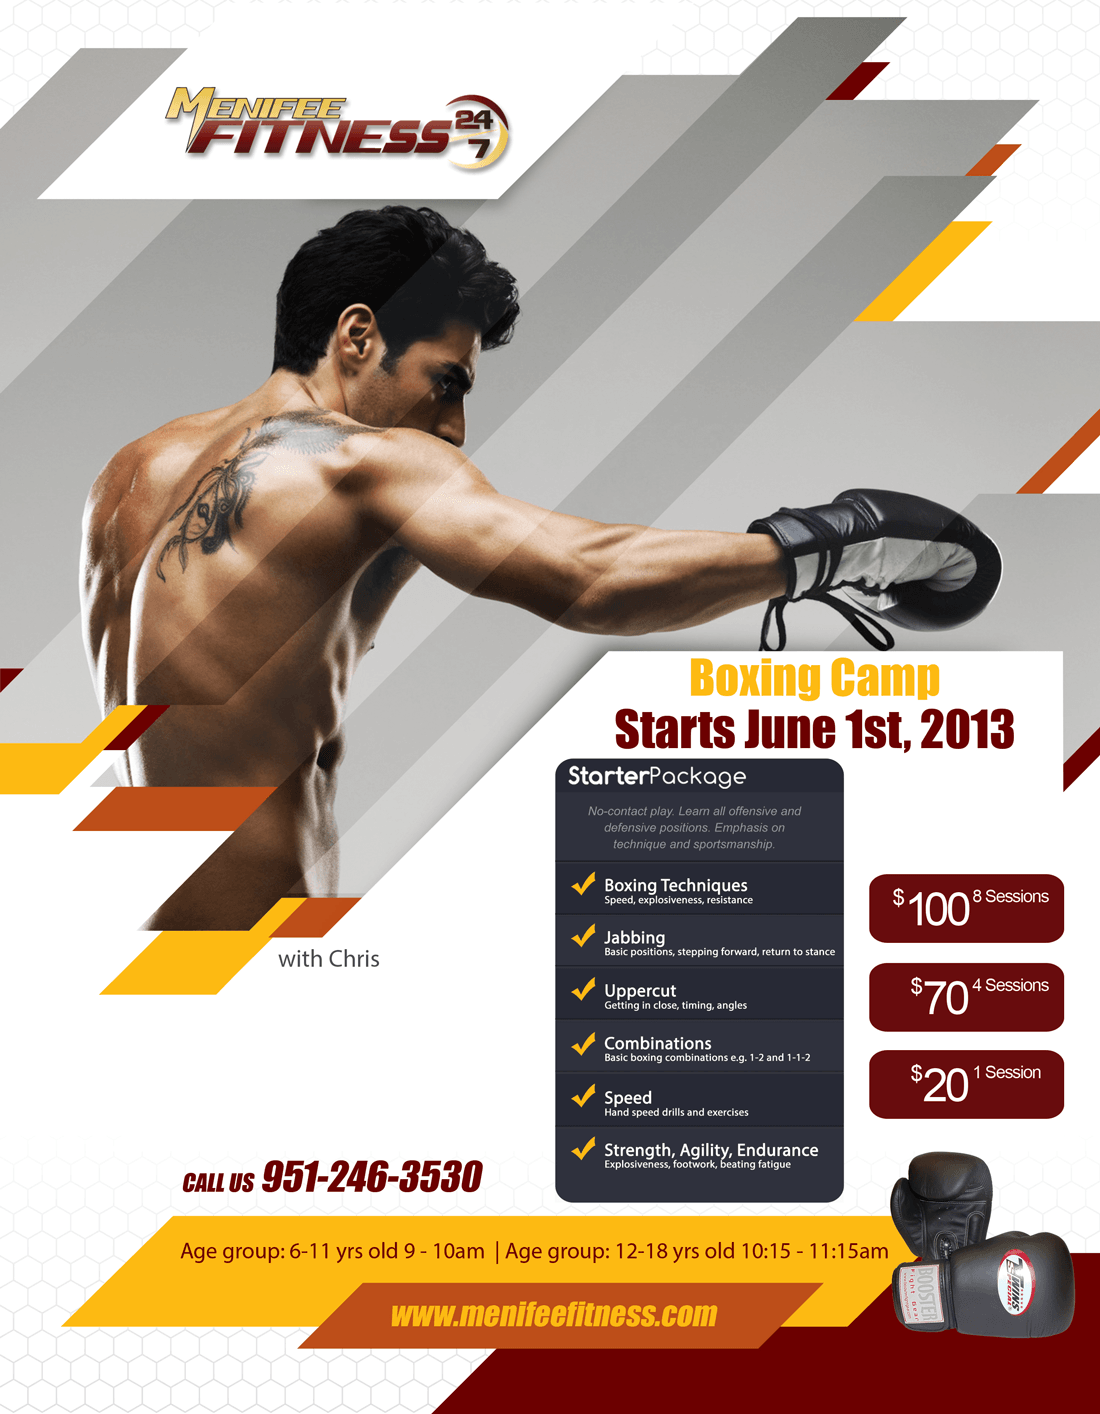 Menifee Fitness Boxing Camp